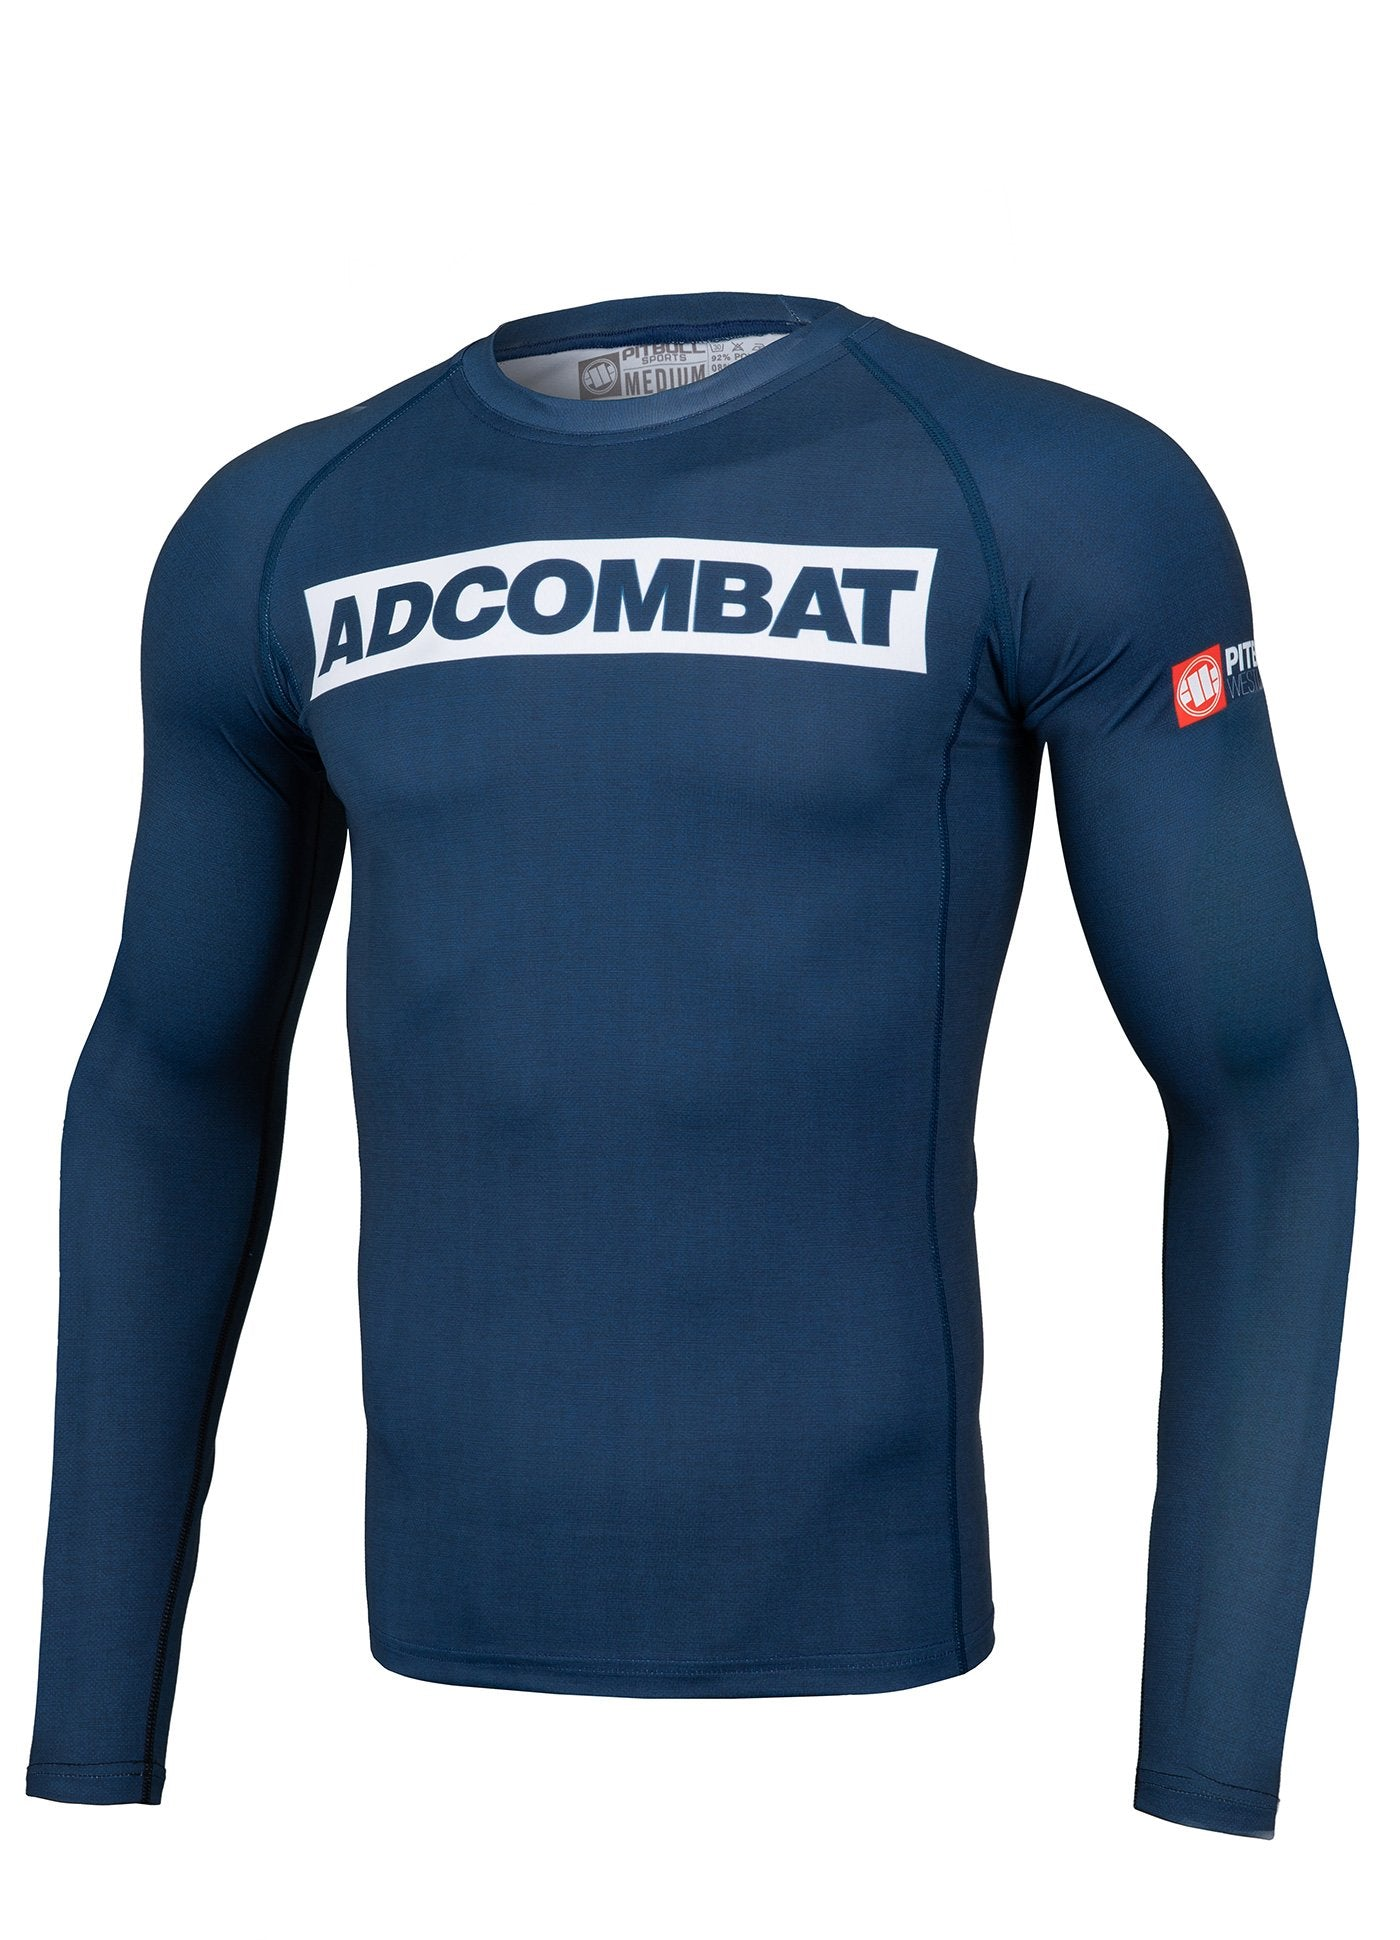 ADCC HILLTOP Dark Navy Long Sleeve Rashguard - Pitbull West Coast U.S.A.